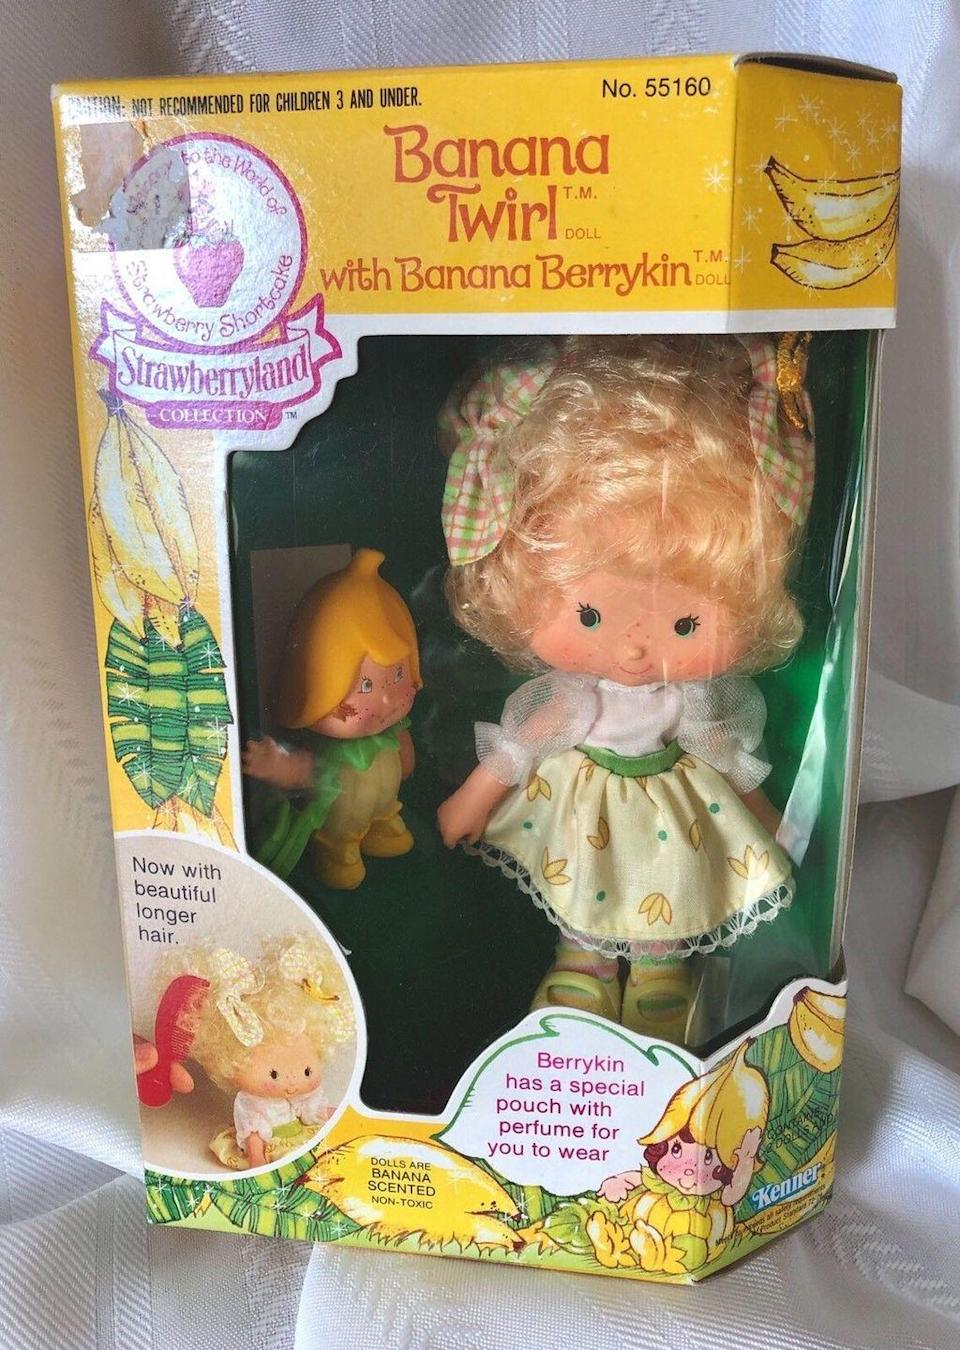 """<p>Who didn't adore Strawberry Shortcake and all her adorable friends with dessert-themed names? The original dolls were released in the 1980s and now command between <a href=""""https://www.ebay.com/itm/Party-Pleaser-Strawberry-Shortcake-Doll-Cafe-Ole-Burrito-Pet-Vintage-1983-Kenner/283153165707?epid=1101708065&hash=item41ed3e6d8b:g:eowAAOSwYwFbluCG:sc:USPSPriority!32962!US!-1:rk:8:pf:0"""" rel=""""nofollow noopener"""" target=""""_blank"""" data-ylk=""""slk:$100"""" class=""""link rapid-noclick-resp"""">$100</a> and <a href=""""https://www.ebay.com/itm/Vintage-Strawberry-Shortcake-Banana-Twirl-Berrykin-Doll-Rare-Very-HTF-NEW-IN-BOX/392171472364?hash=item5b4f3dc5ec:g:-nwAAOSwHnJb6Kjm:rk:12:pf:0"""" rel=""""nofollow noopener"""" target=""""_blank"""" data-ylk=""""slk:$550"""" class=""""link rapid-noclick-resp"""">$550</a>, especially ones still housed in their box. </p>"""